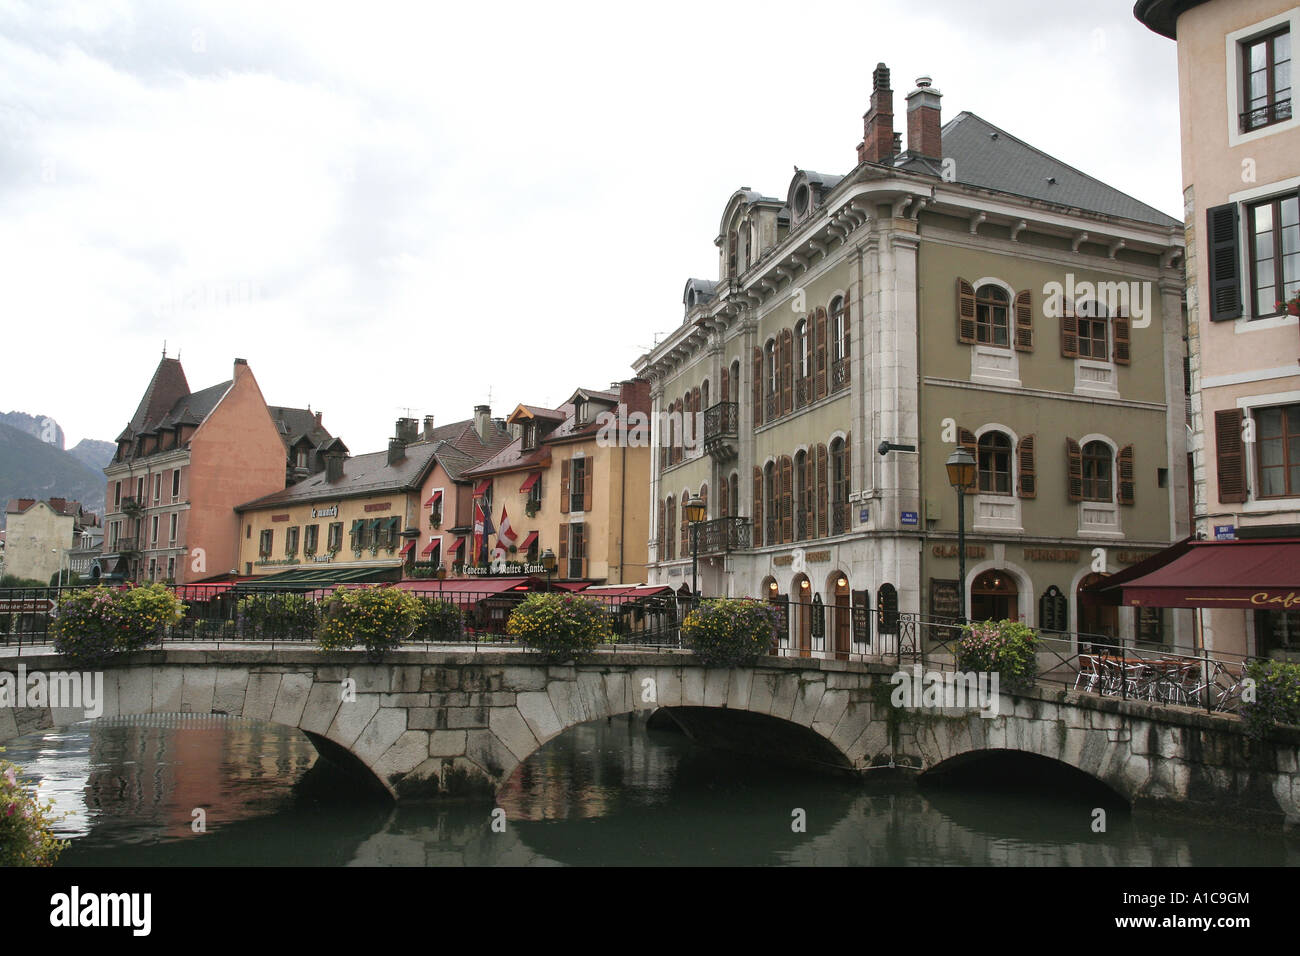 climatic spa Annecy, cityscape, France, Rhne-Alpes, Annecy - Stock Image